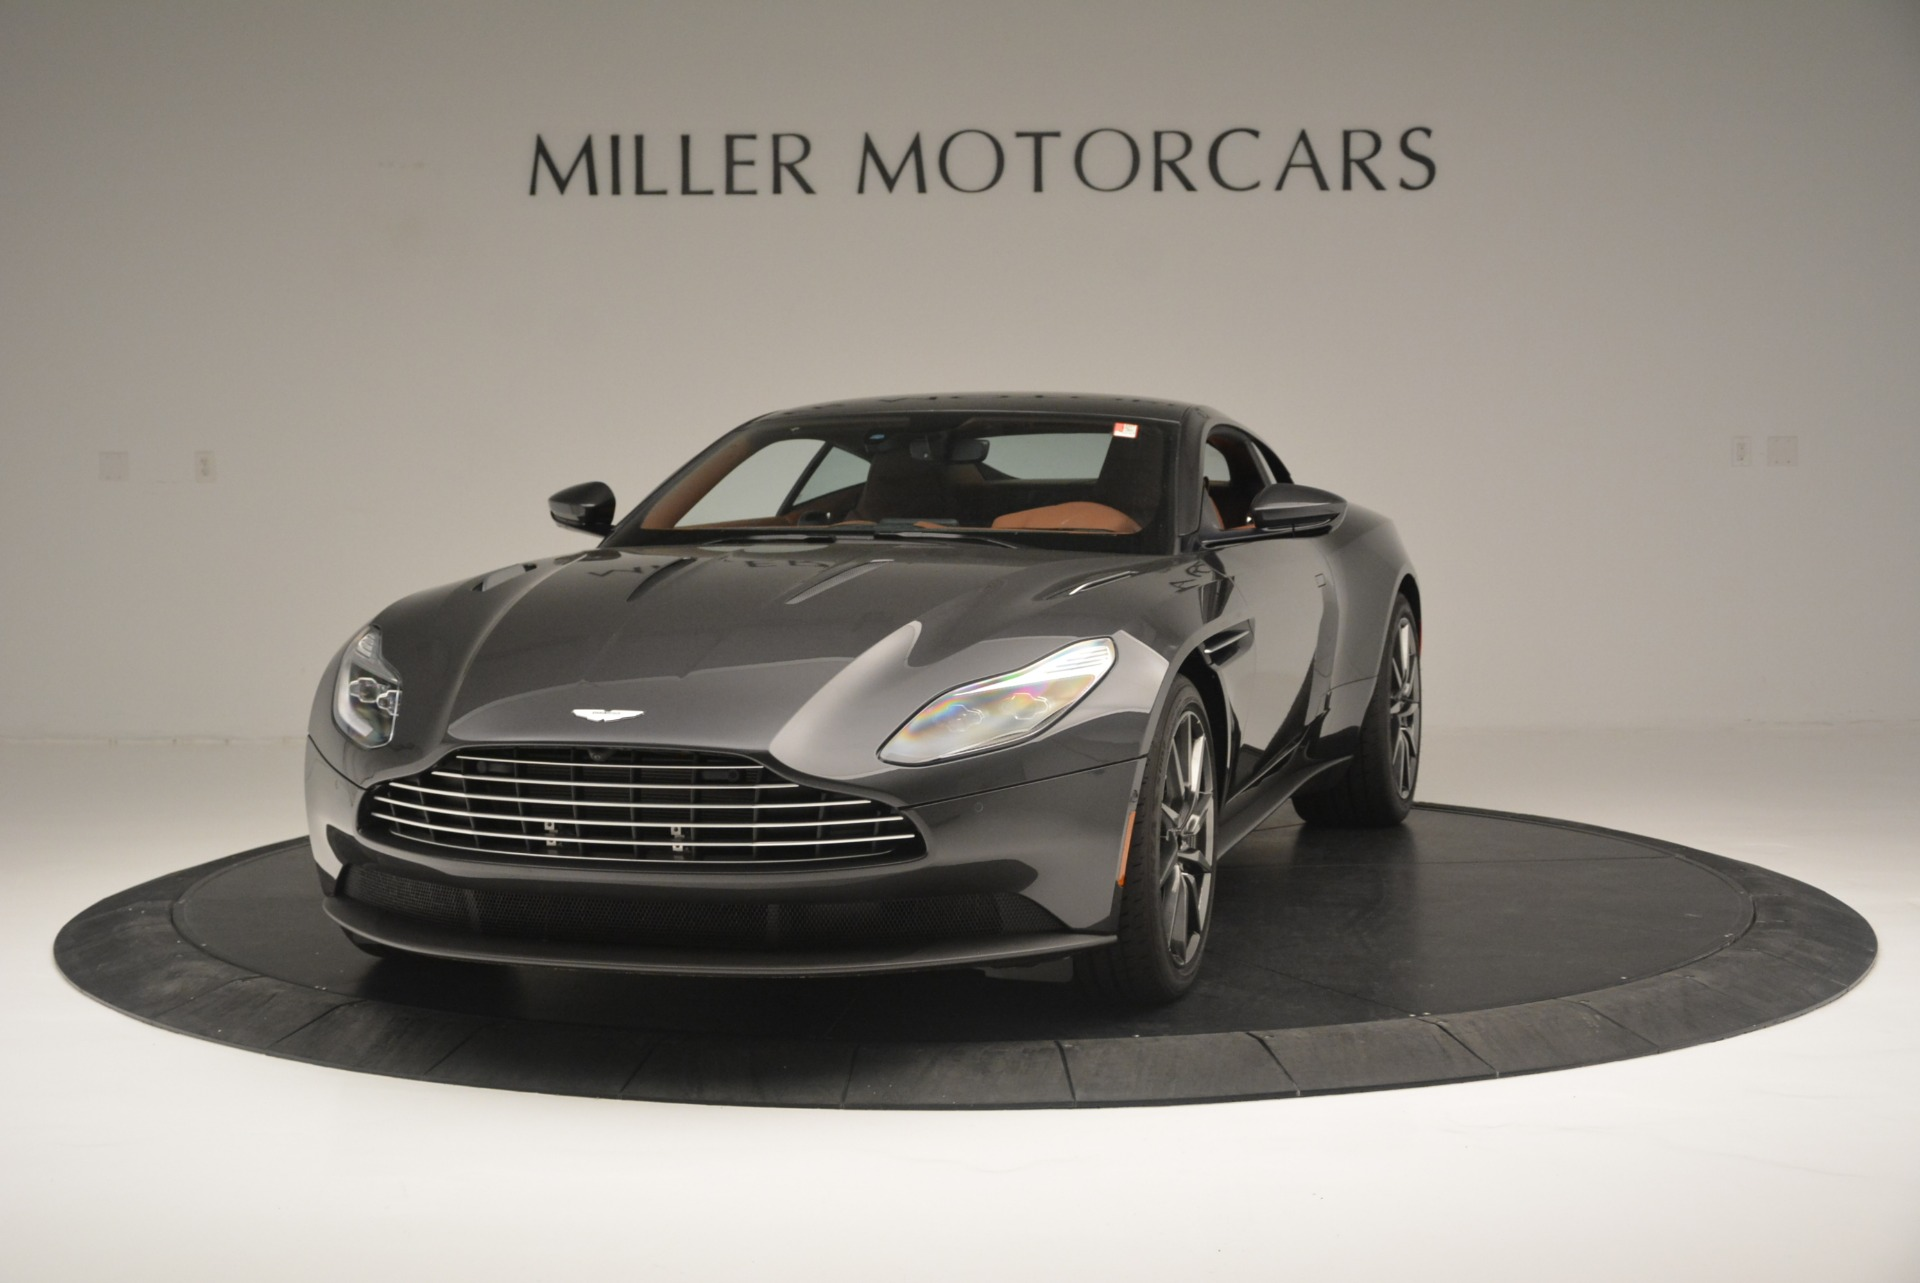 New 2018 Aston Martin DB11 V12 Coupe for sale Sold at Rolls-Royce Motor Cars Greenwich in Greenwich CT 06830 1